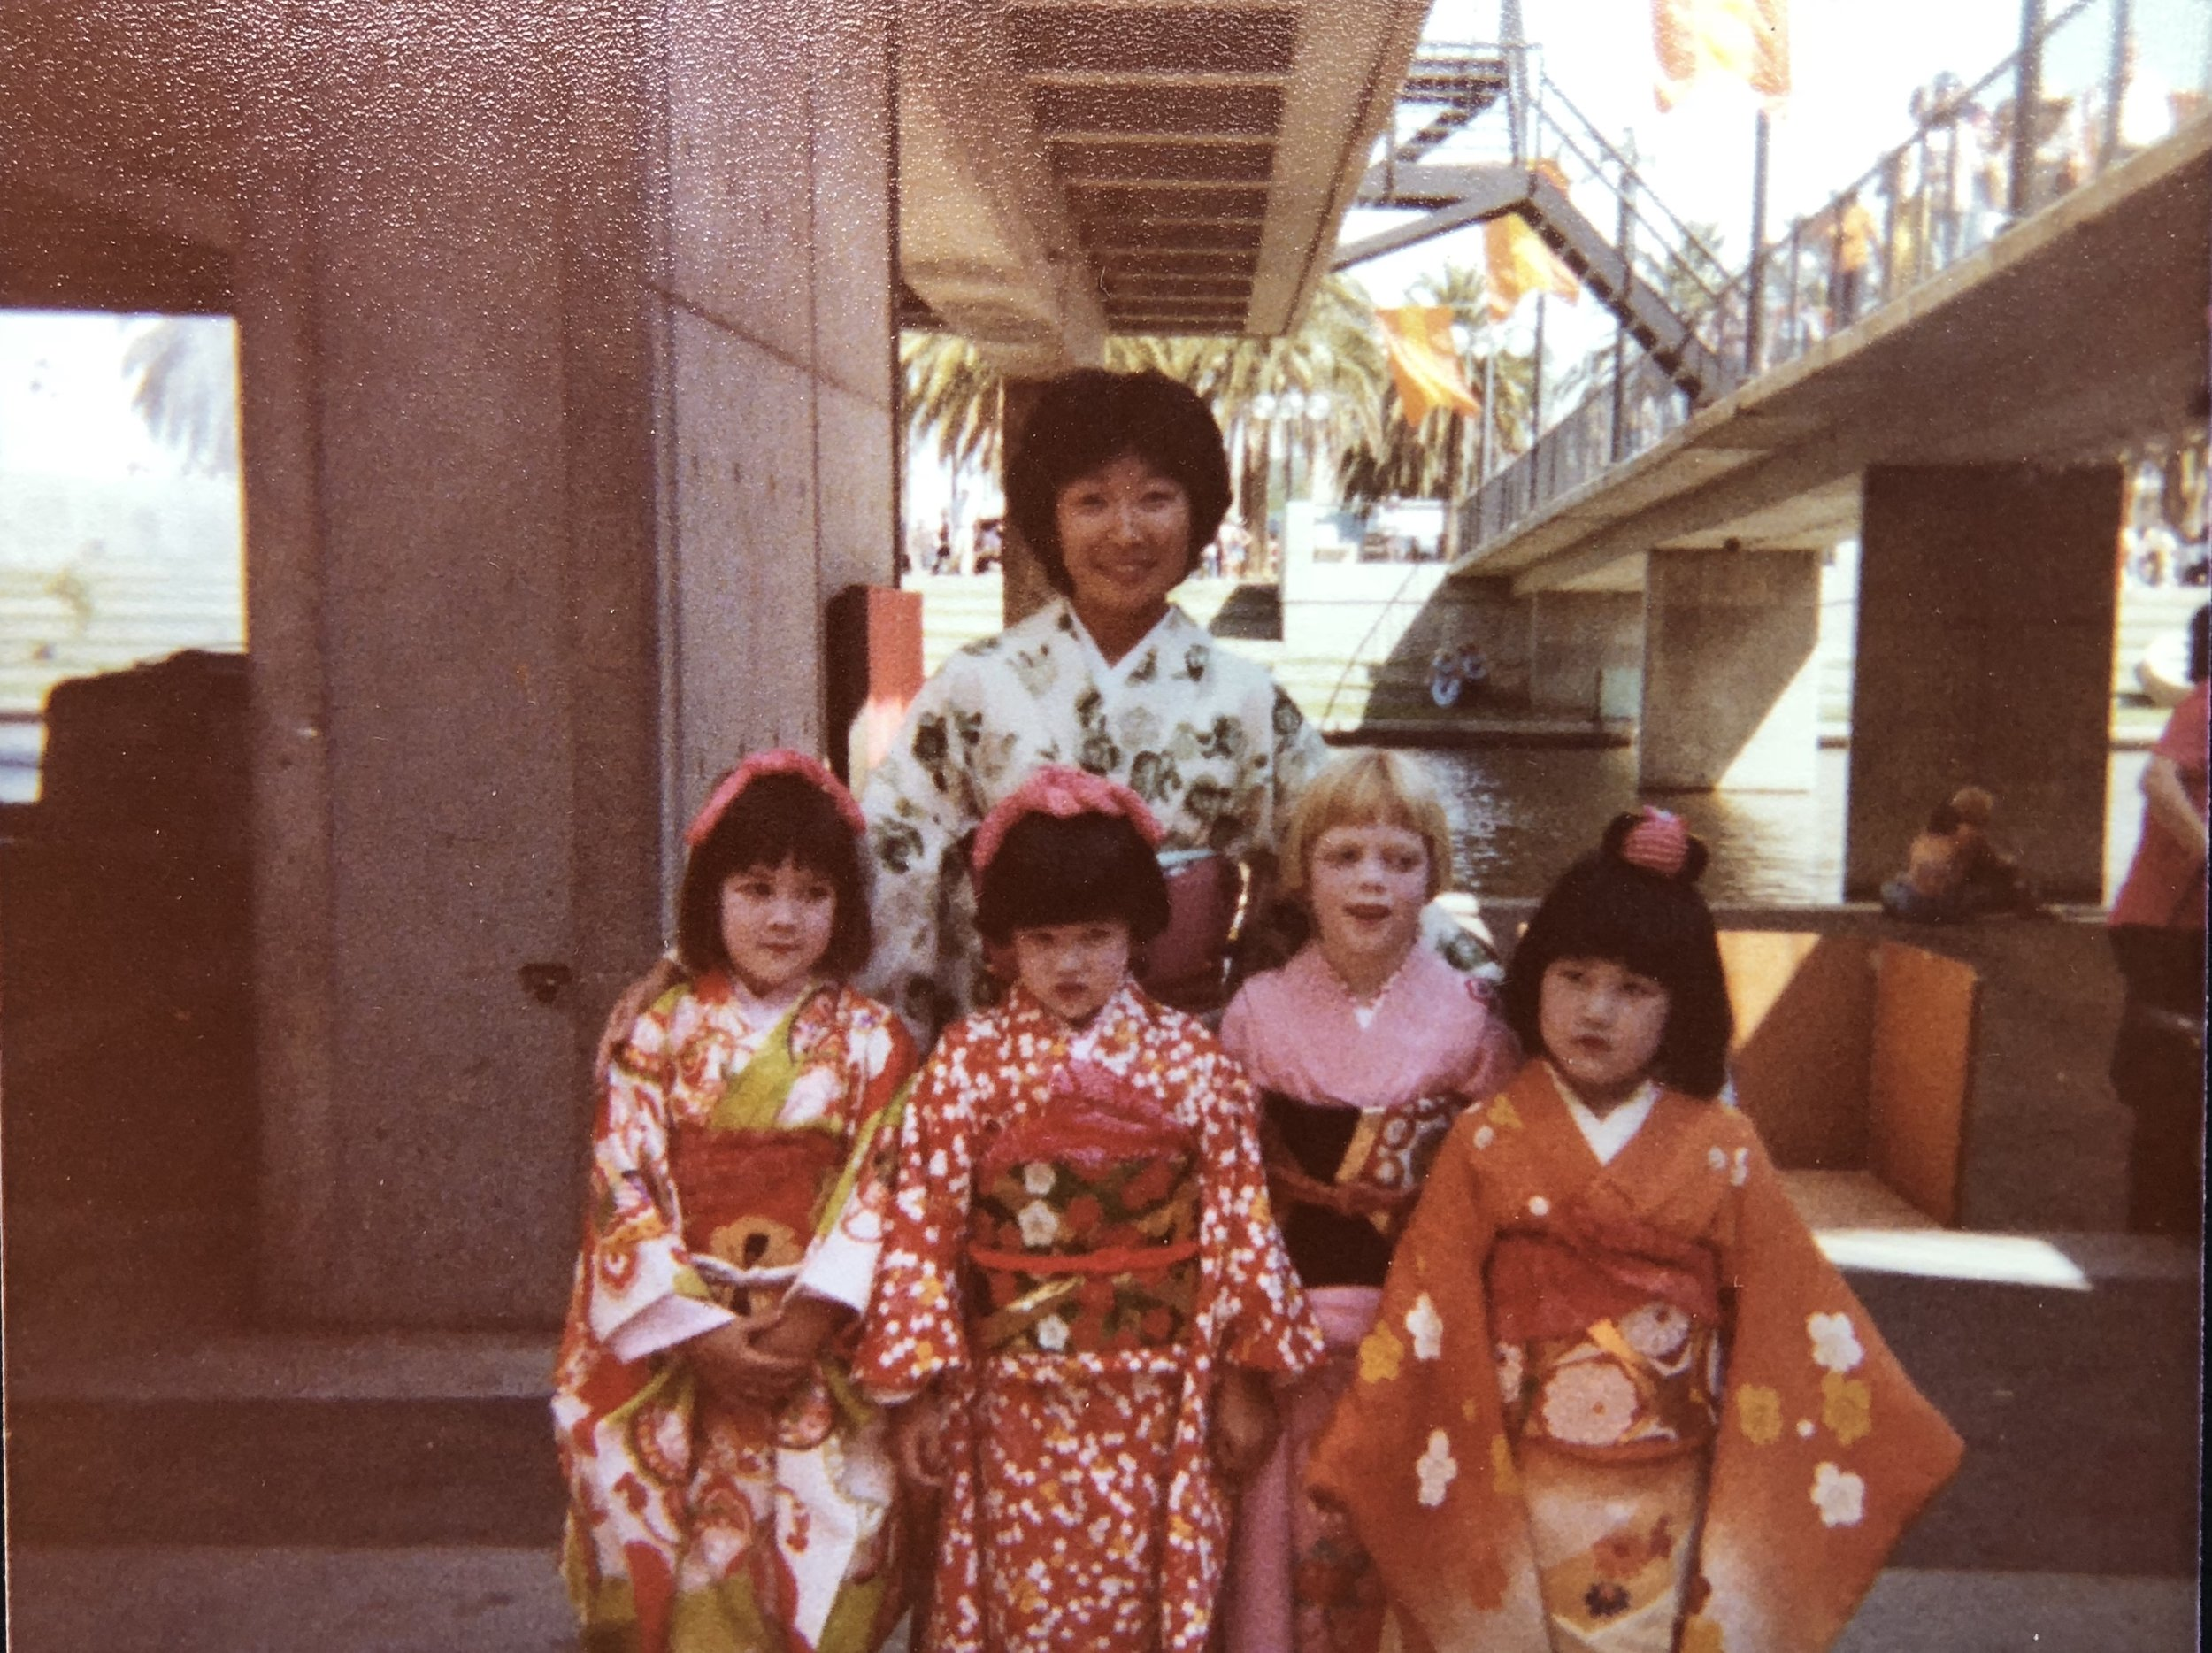 A very small sampling of the countless kimonos lost: my mother and I are standing center. Hanayagi Juteika Kai, San Francisco Cherry Blossom Festival, Spring 1978.